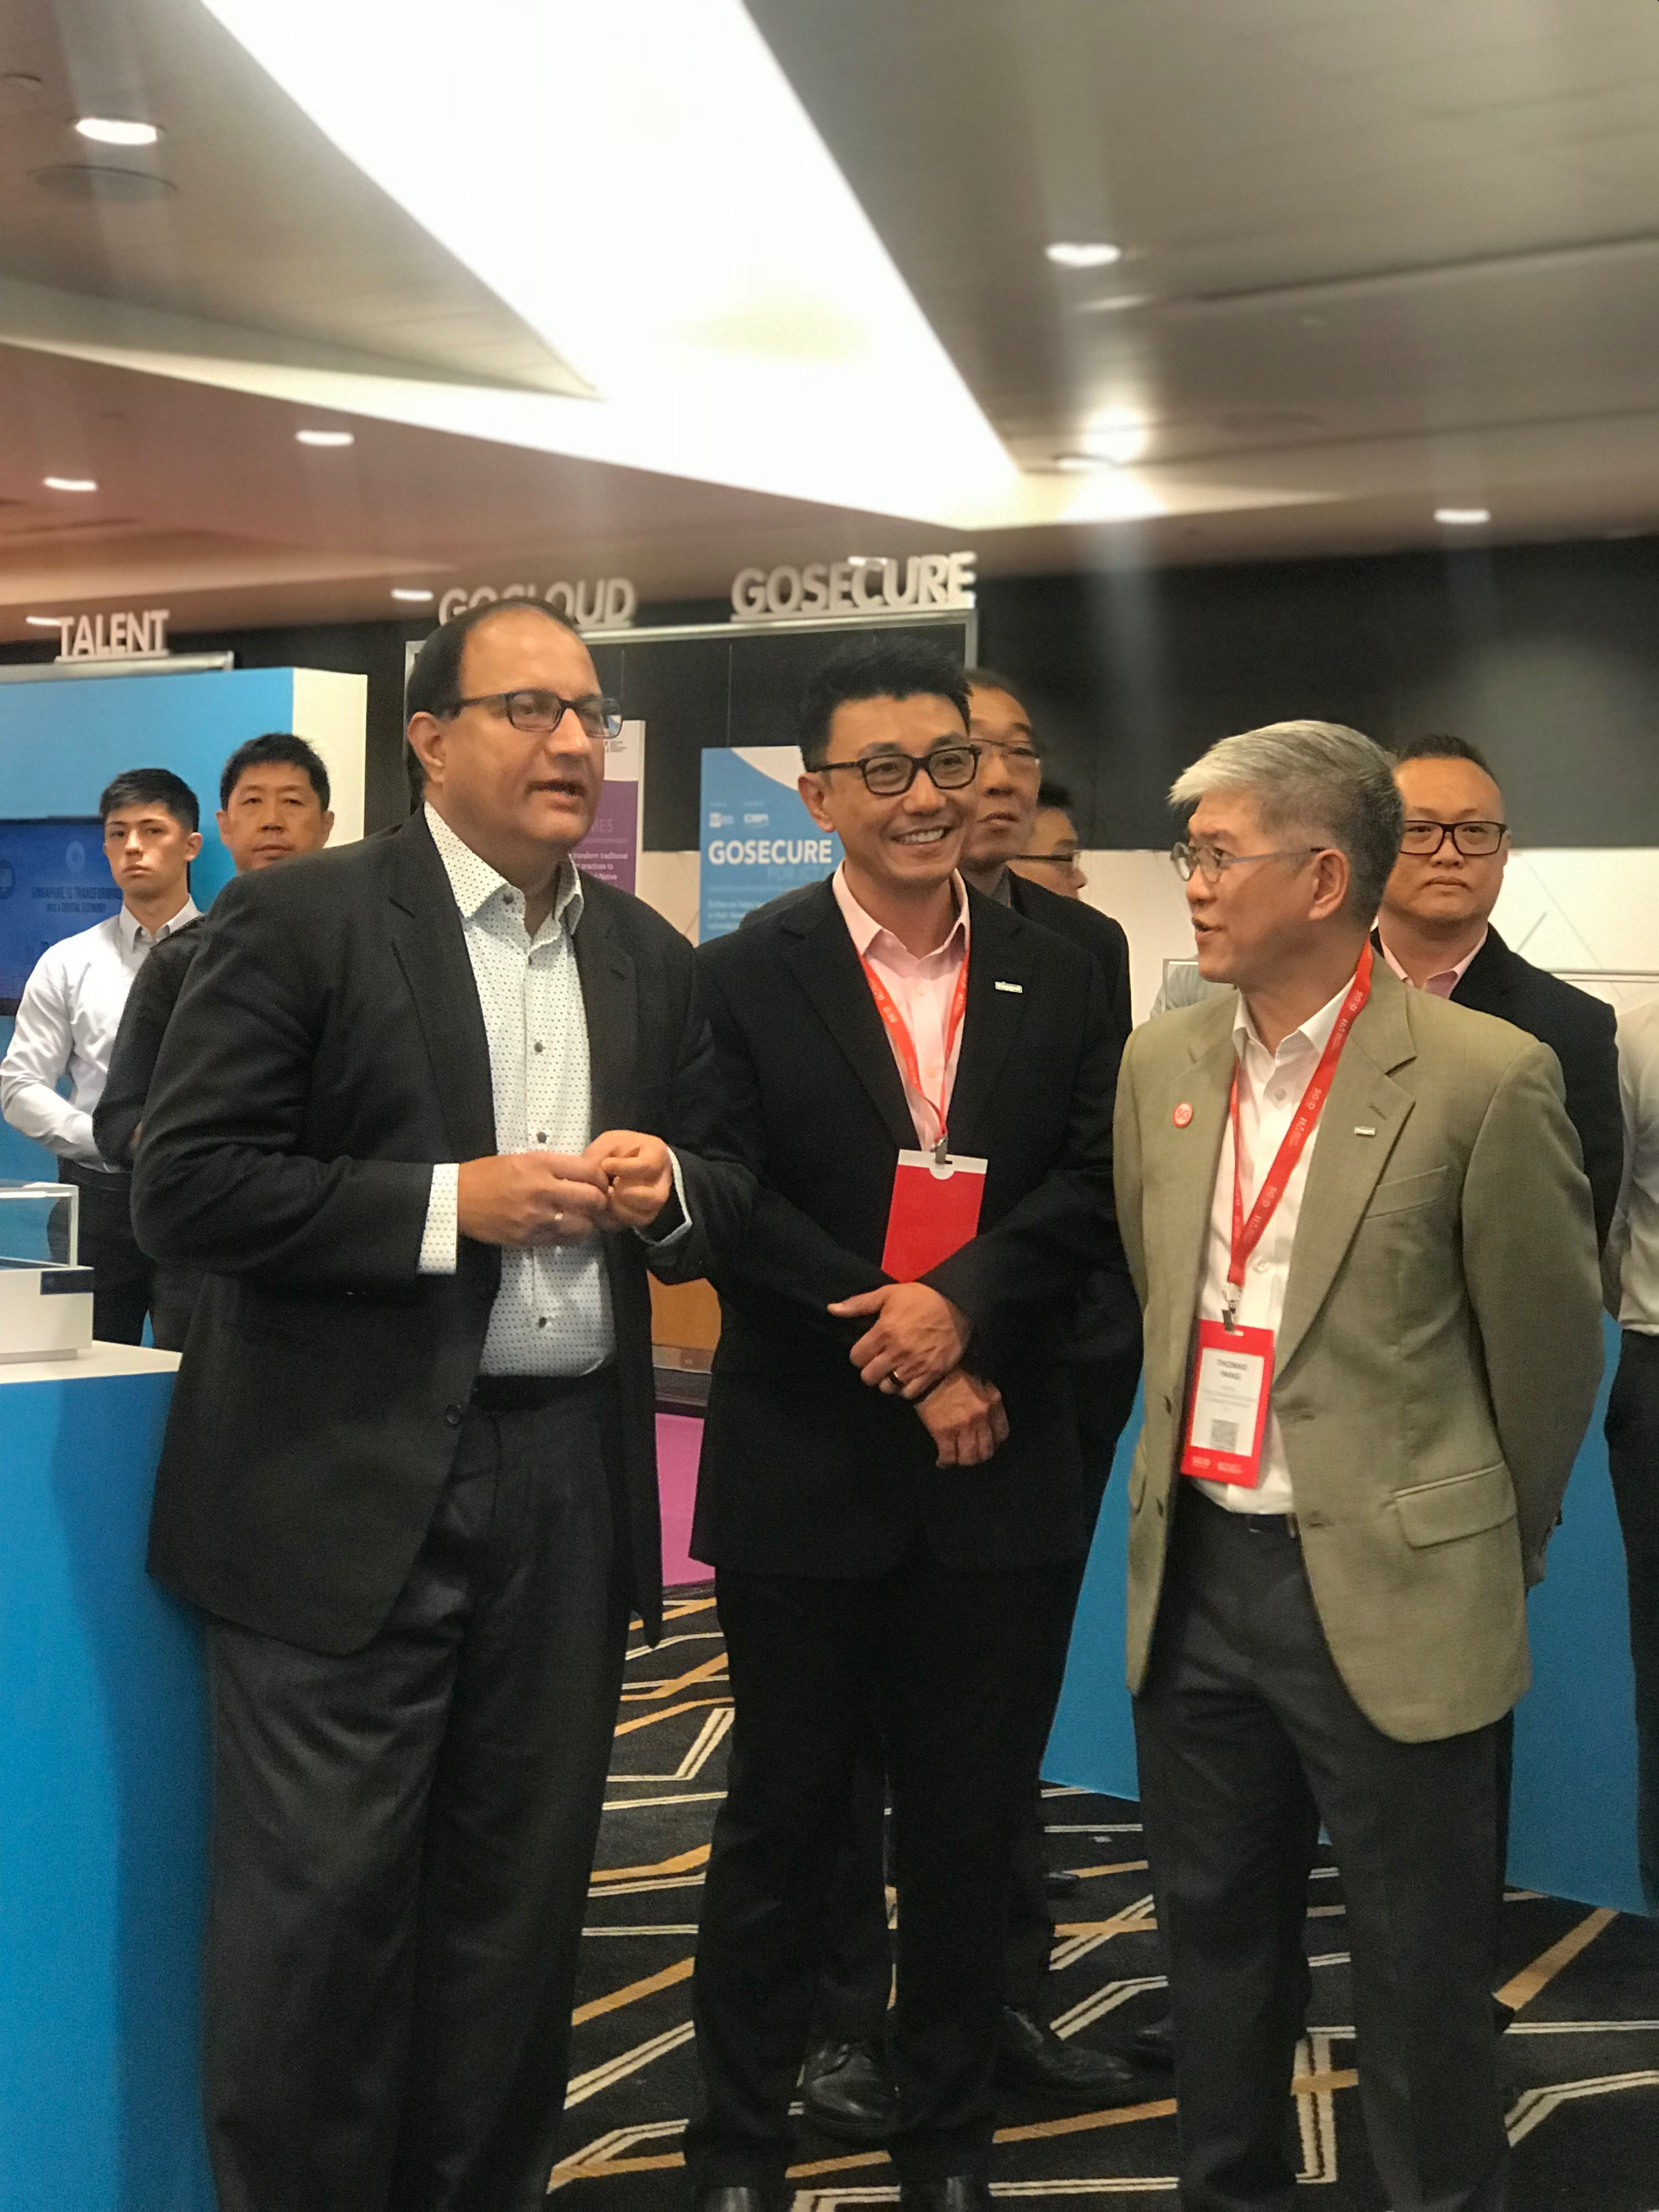 Minister for Communications and Information S Iswaran (left) is seen at the event. Photo: Liem Nguyen